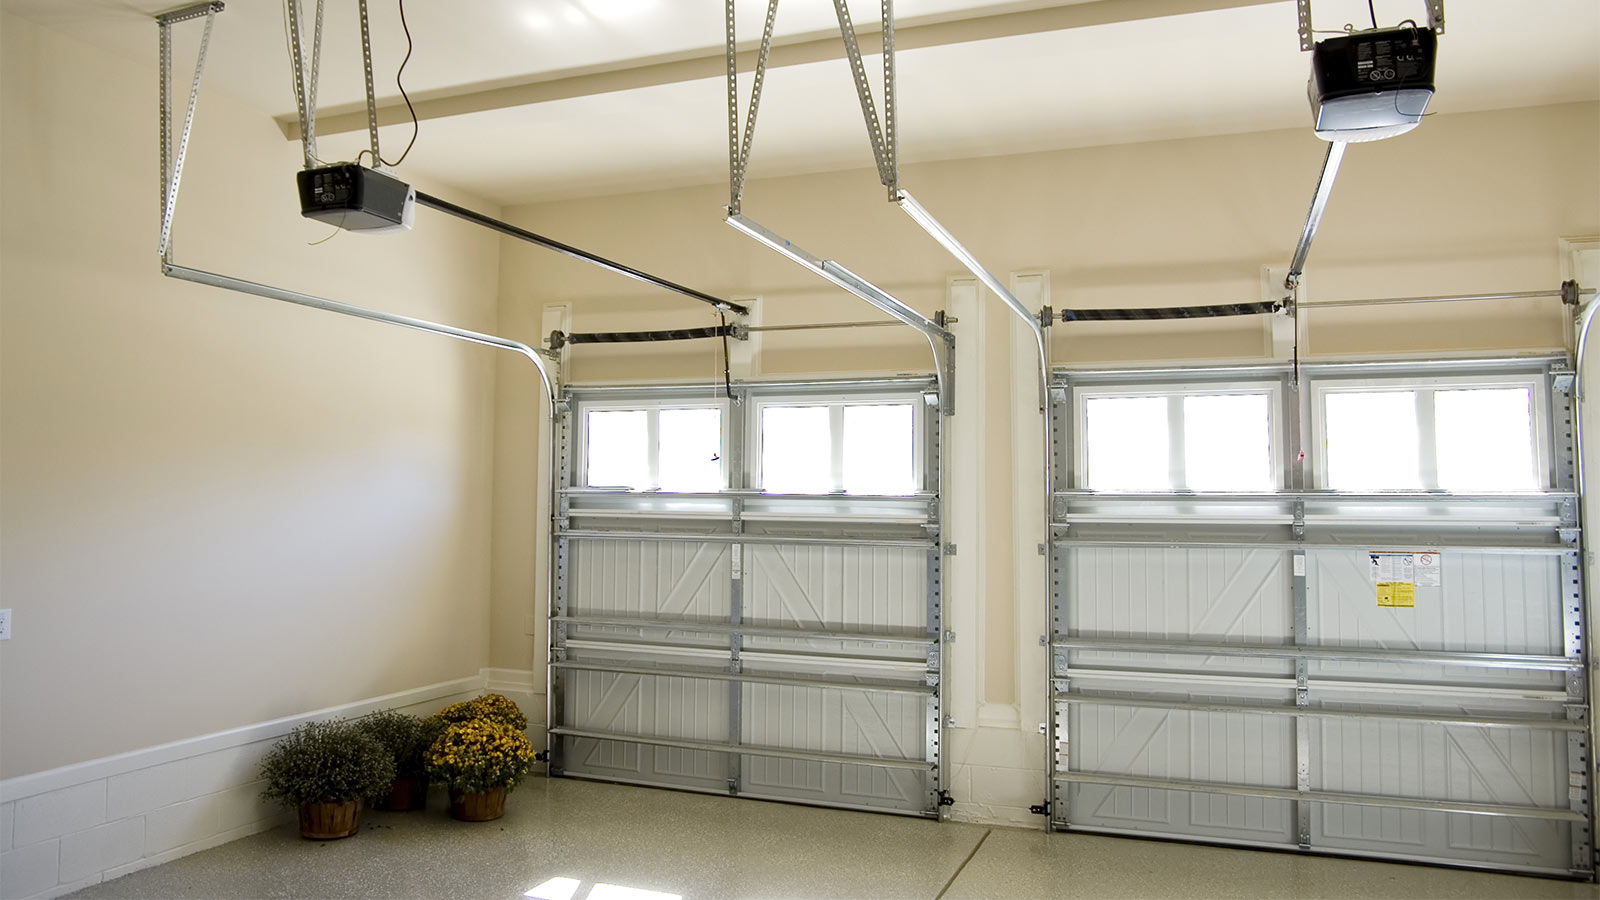 Sectional Garage Doors from Dock Levellers Romford suppliers.